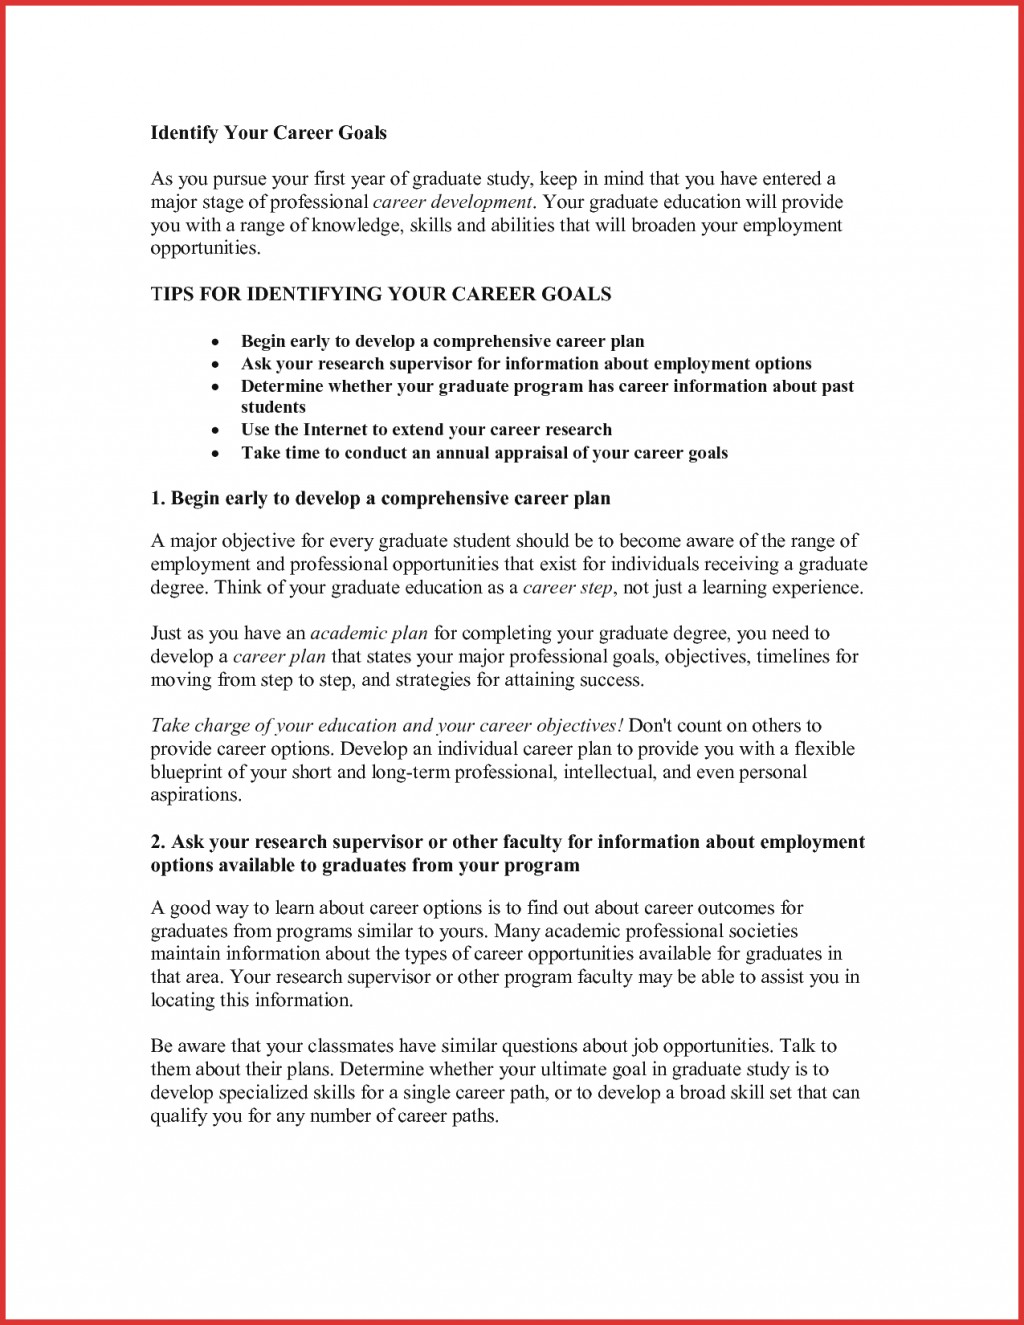 003 What Are Your Career Goals Essay Example Goal Examples Unique Sample On Best Medical School Interests And Future Large